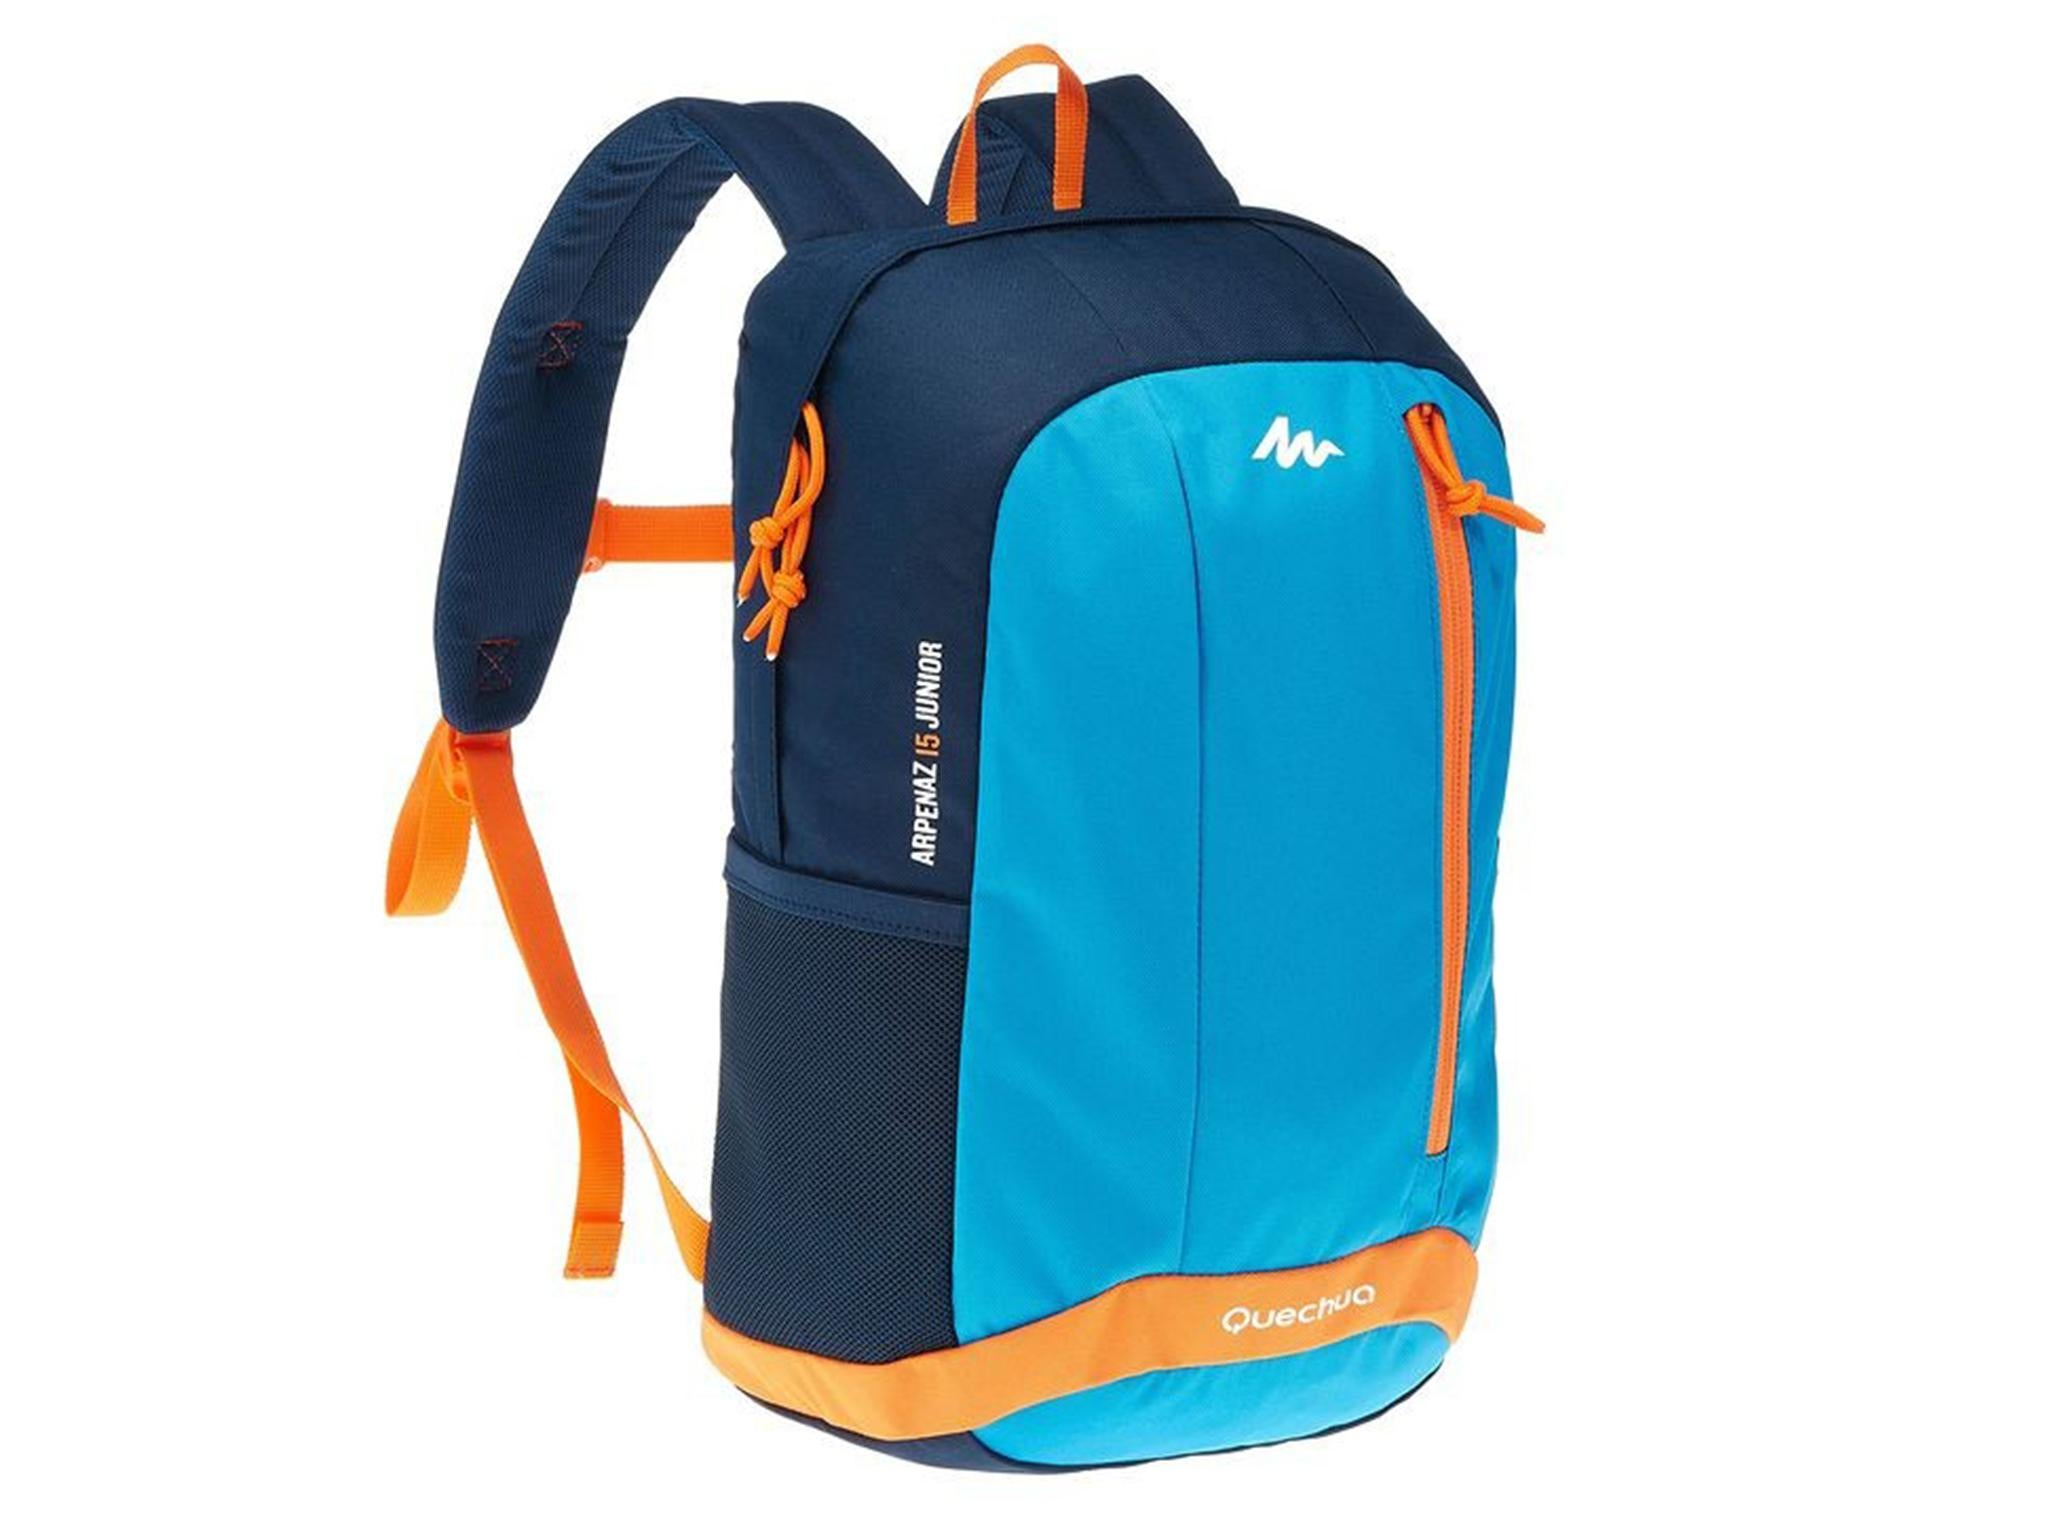 c5c42263d75 The Junior Arpenaz backpack from Decathlon s Quechua brand went down well  with the eight to ten year old testers who liked its bright colours and the  way it ...